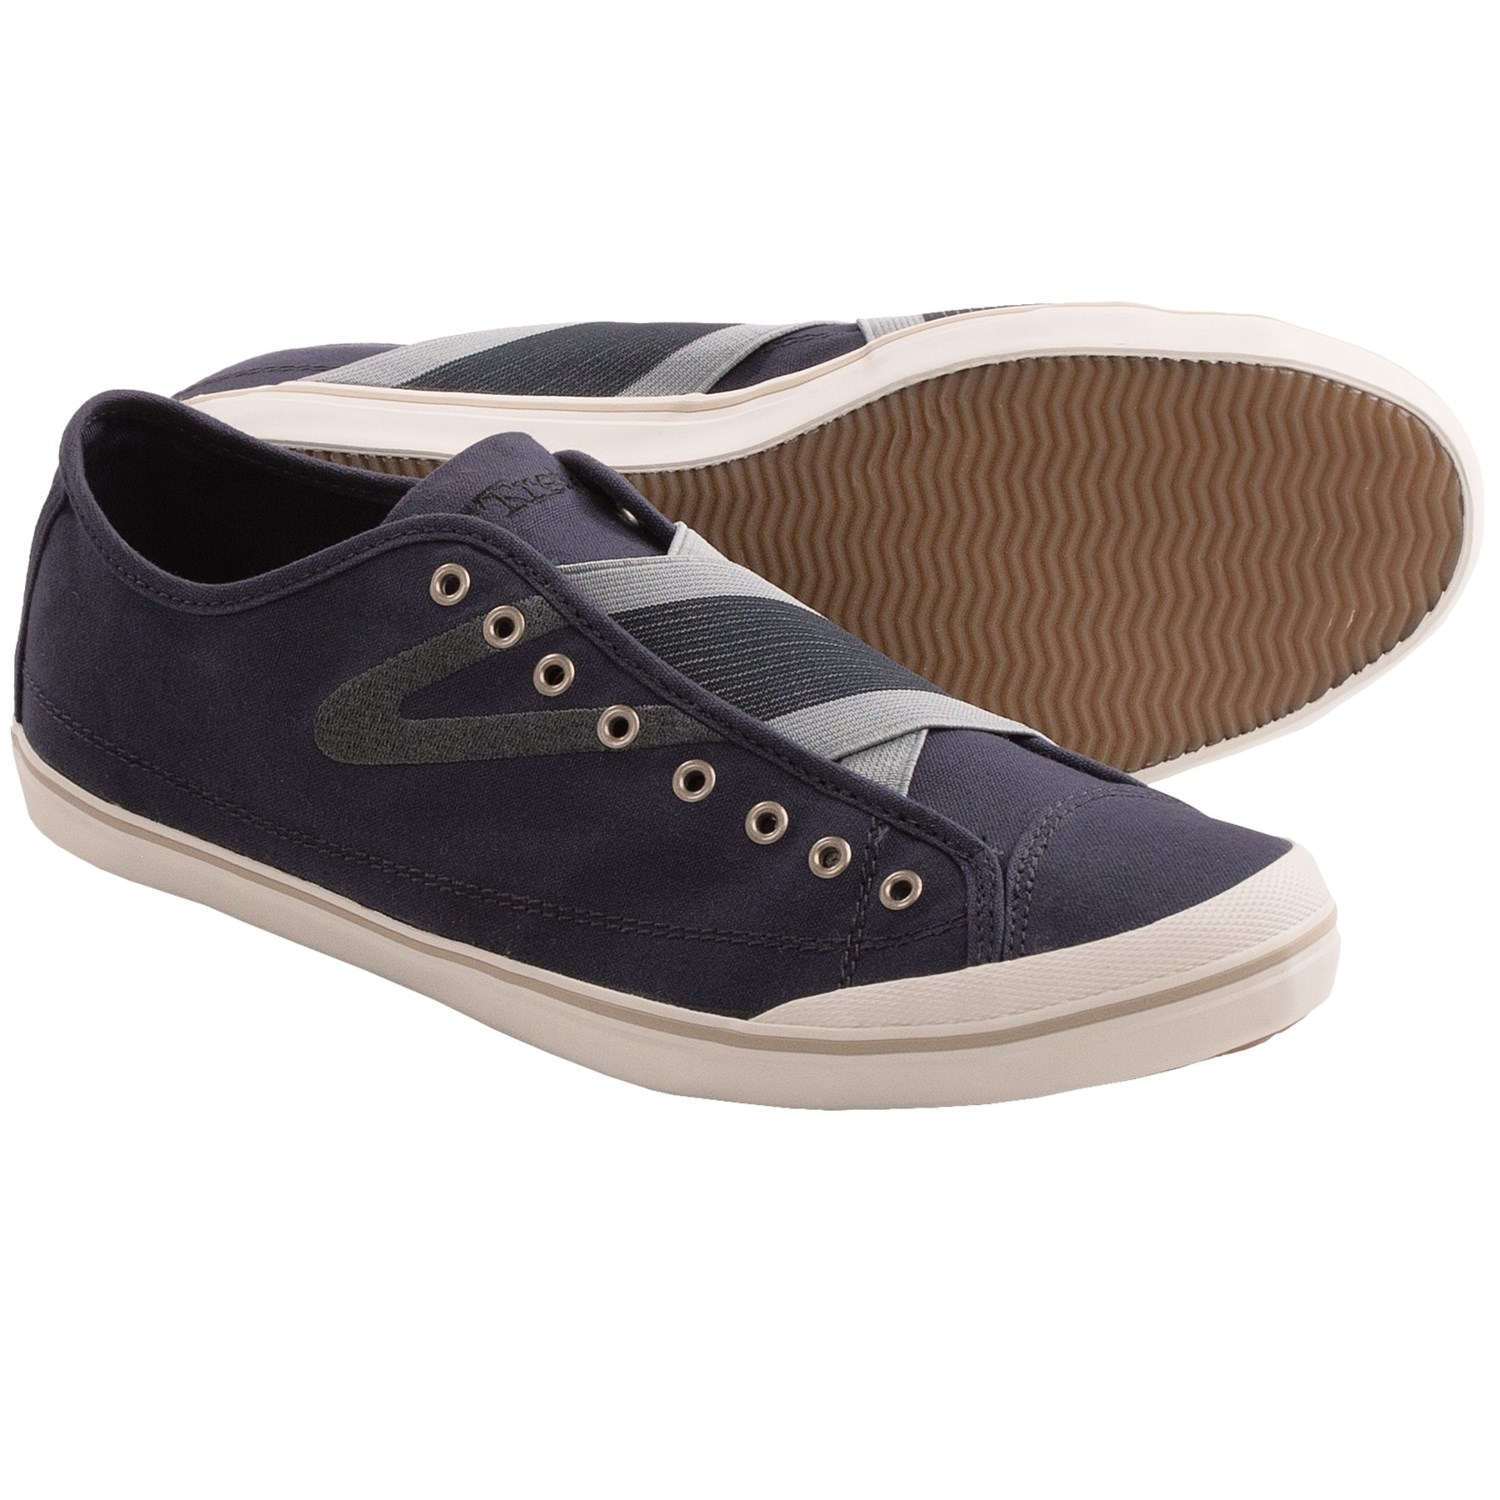 tretorn skymra shoes slip ons for and save 33